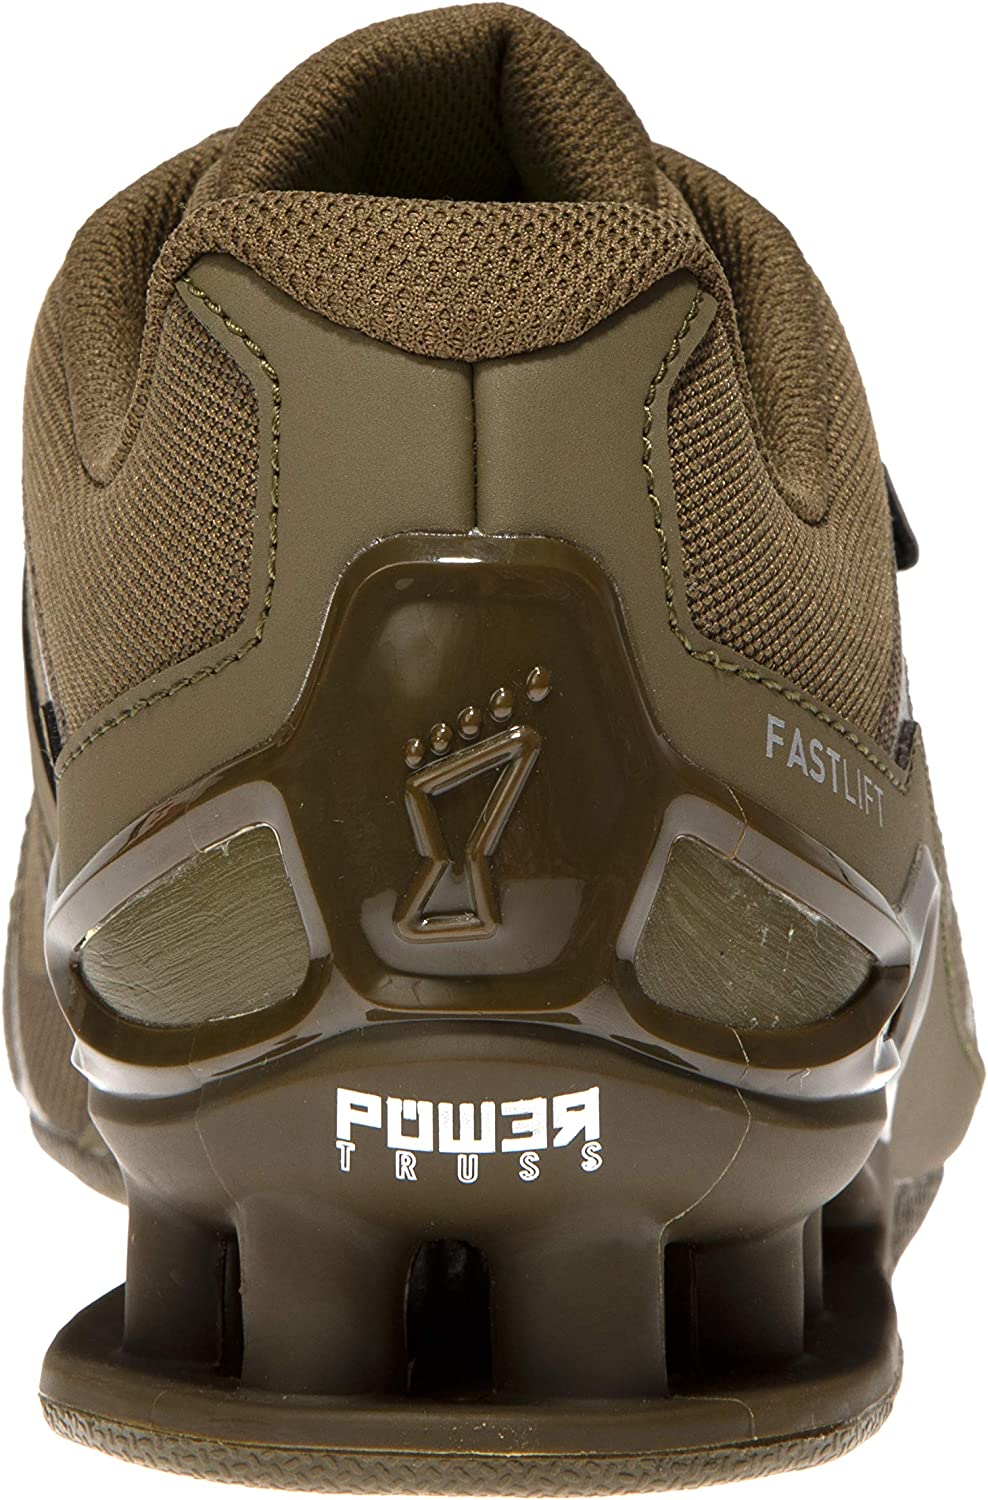 Weightlifting Shoes Inov-8 Mens Fastlift 360 Squat Shoes for Heavy Powerlifting